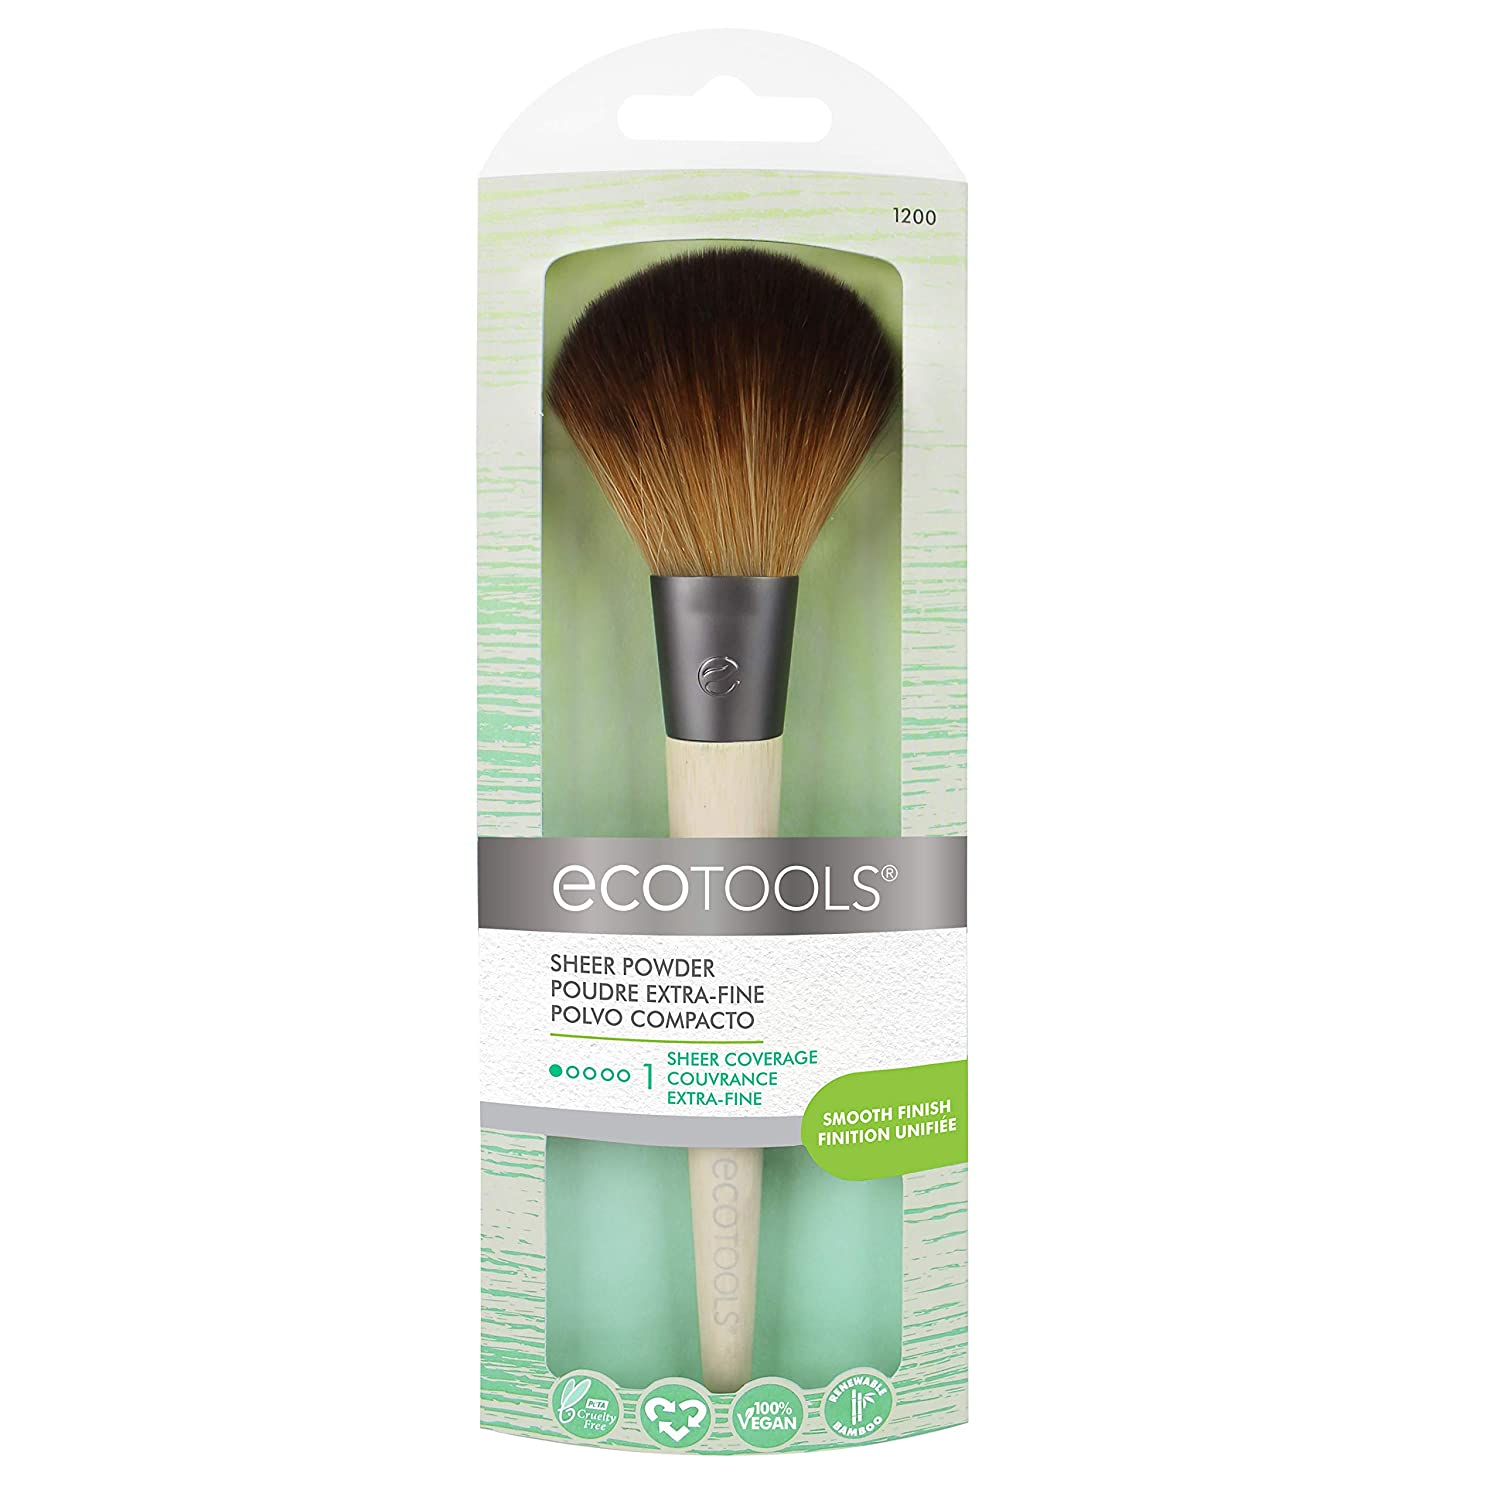 EcoTools Sheer Powder Make-up Brush Paris Presents 79625012002